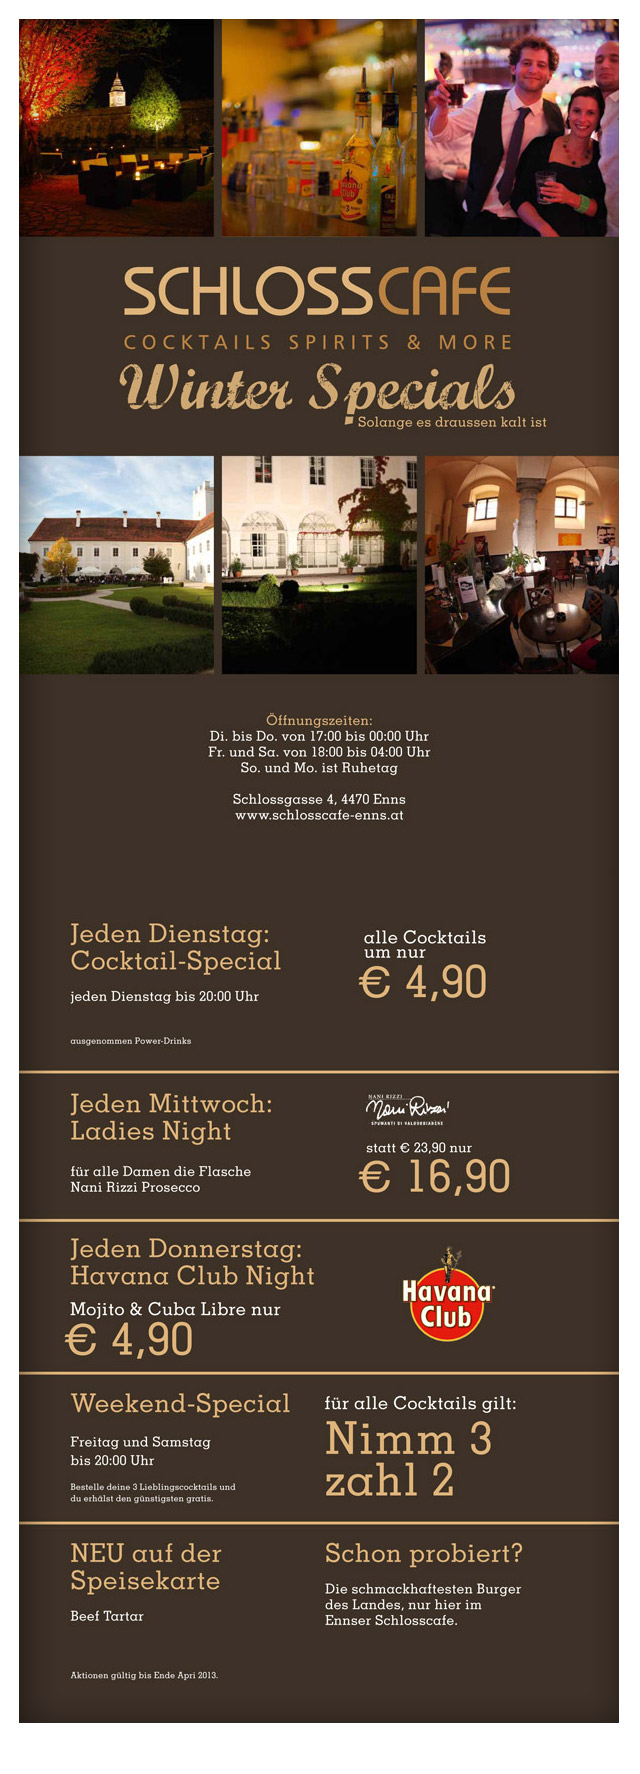 Winter-Specials 2012-2013 | Schlosscafe Enns